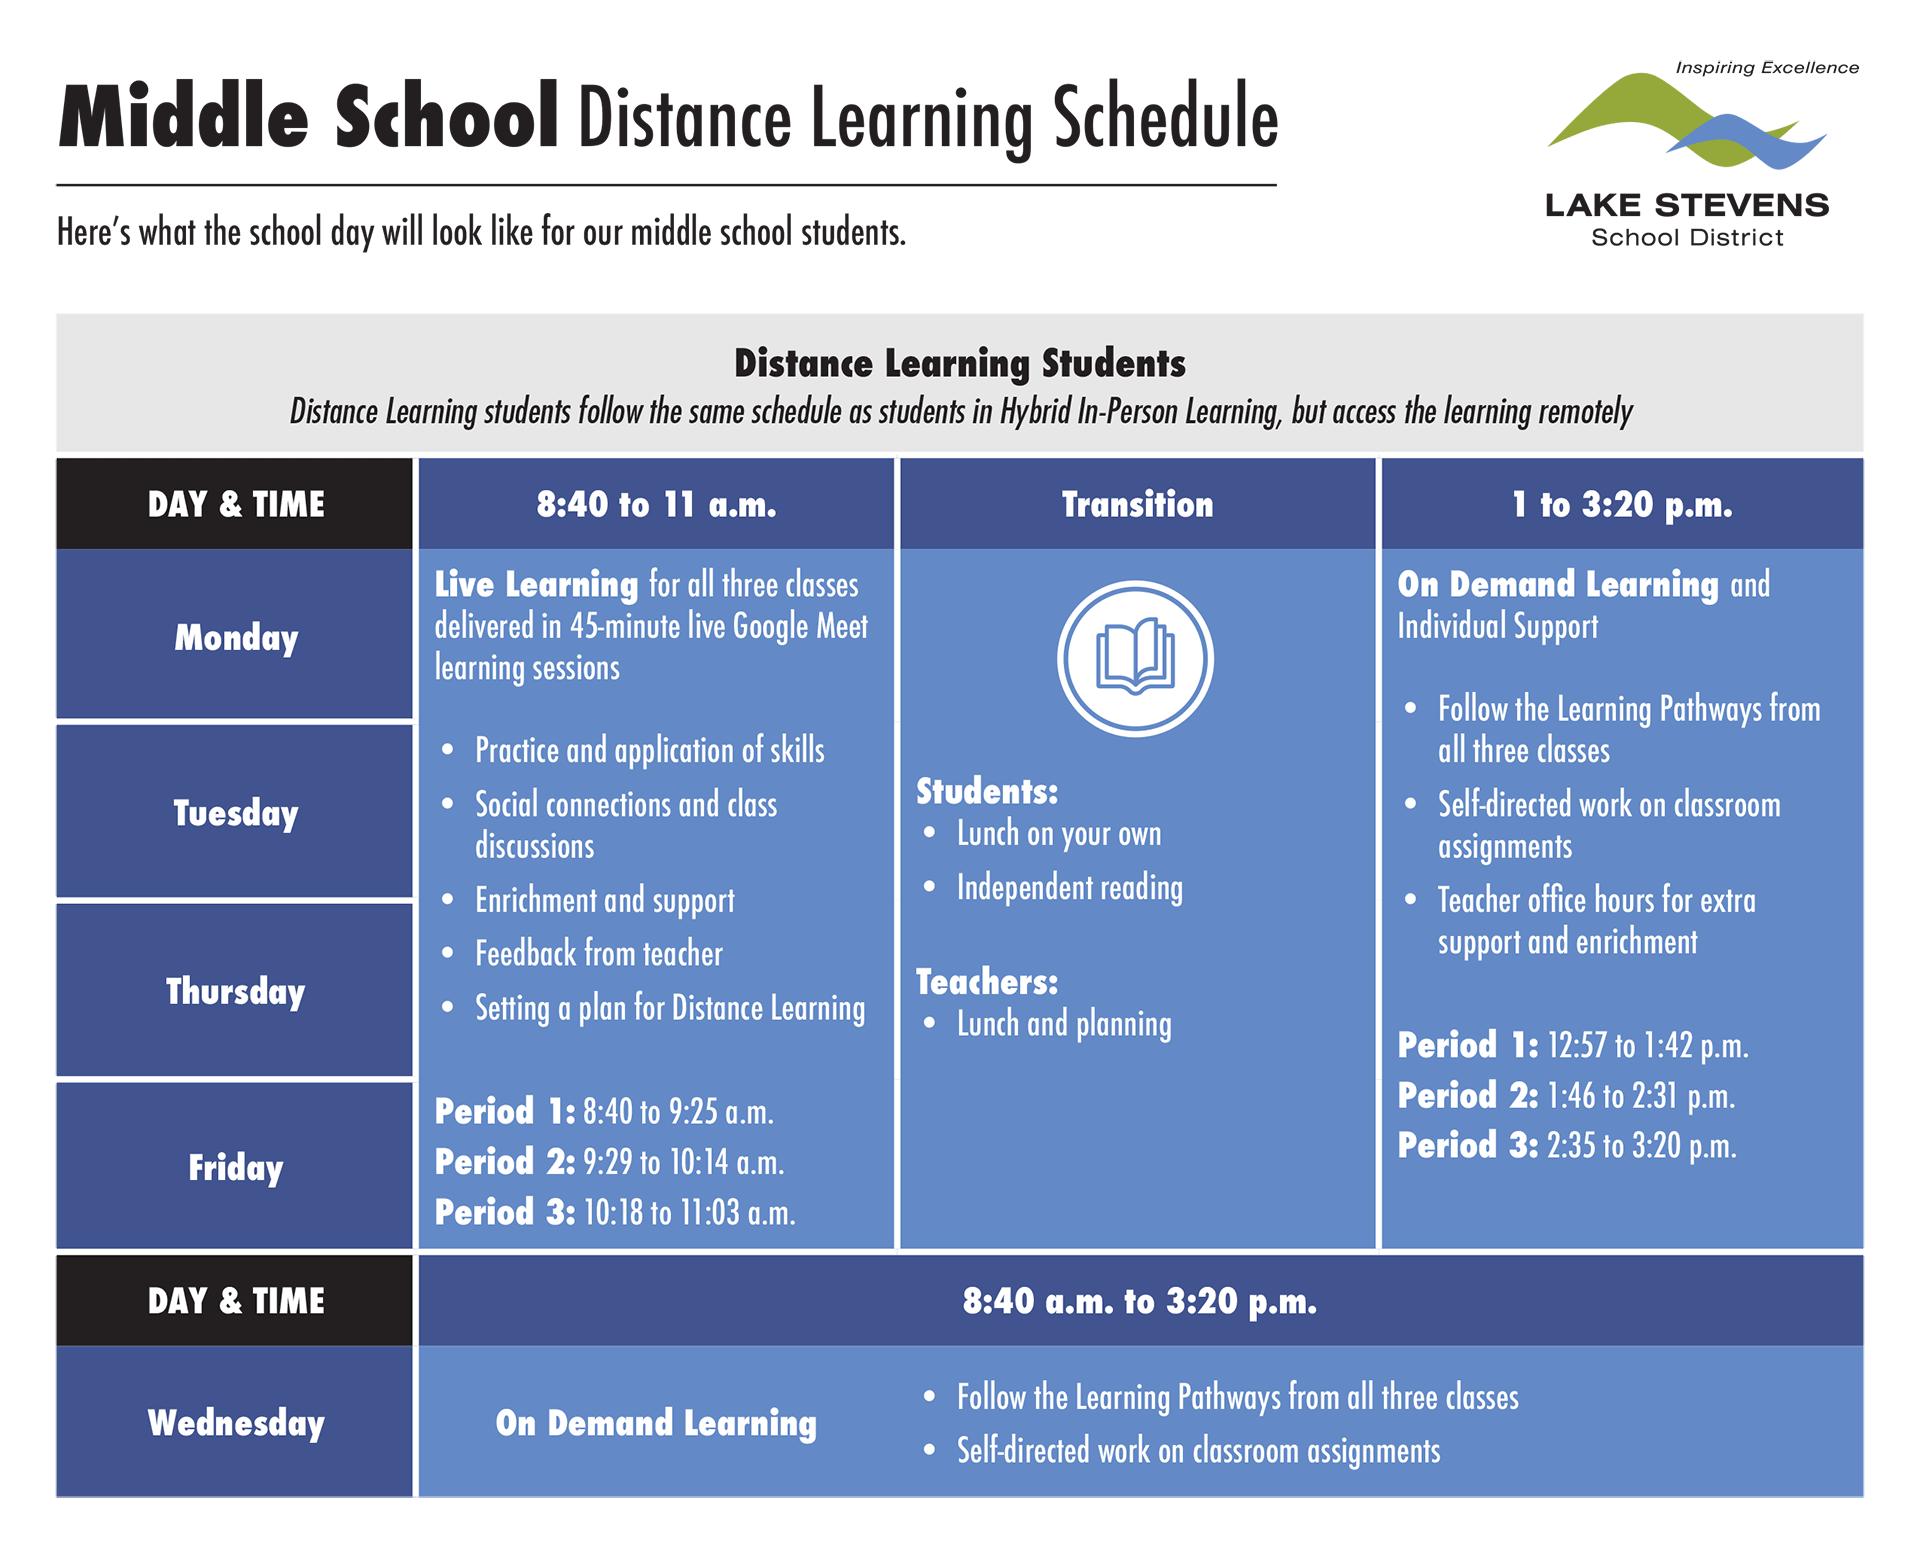 Distance learning schedule for middle school